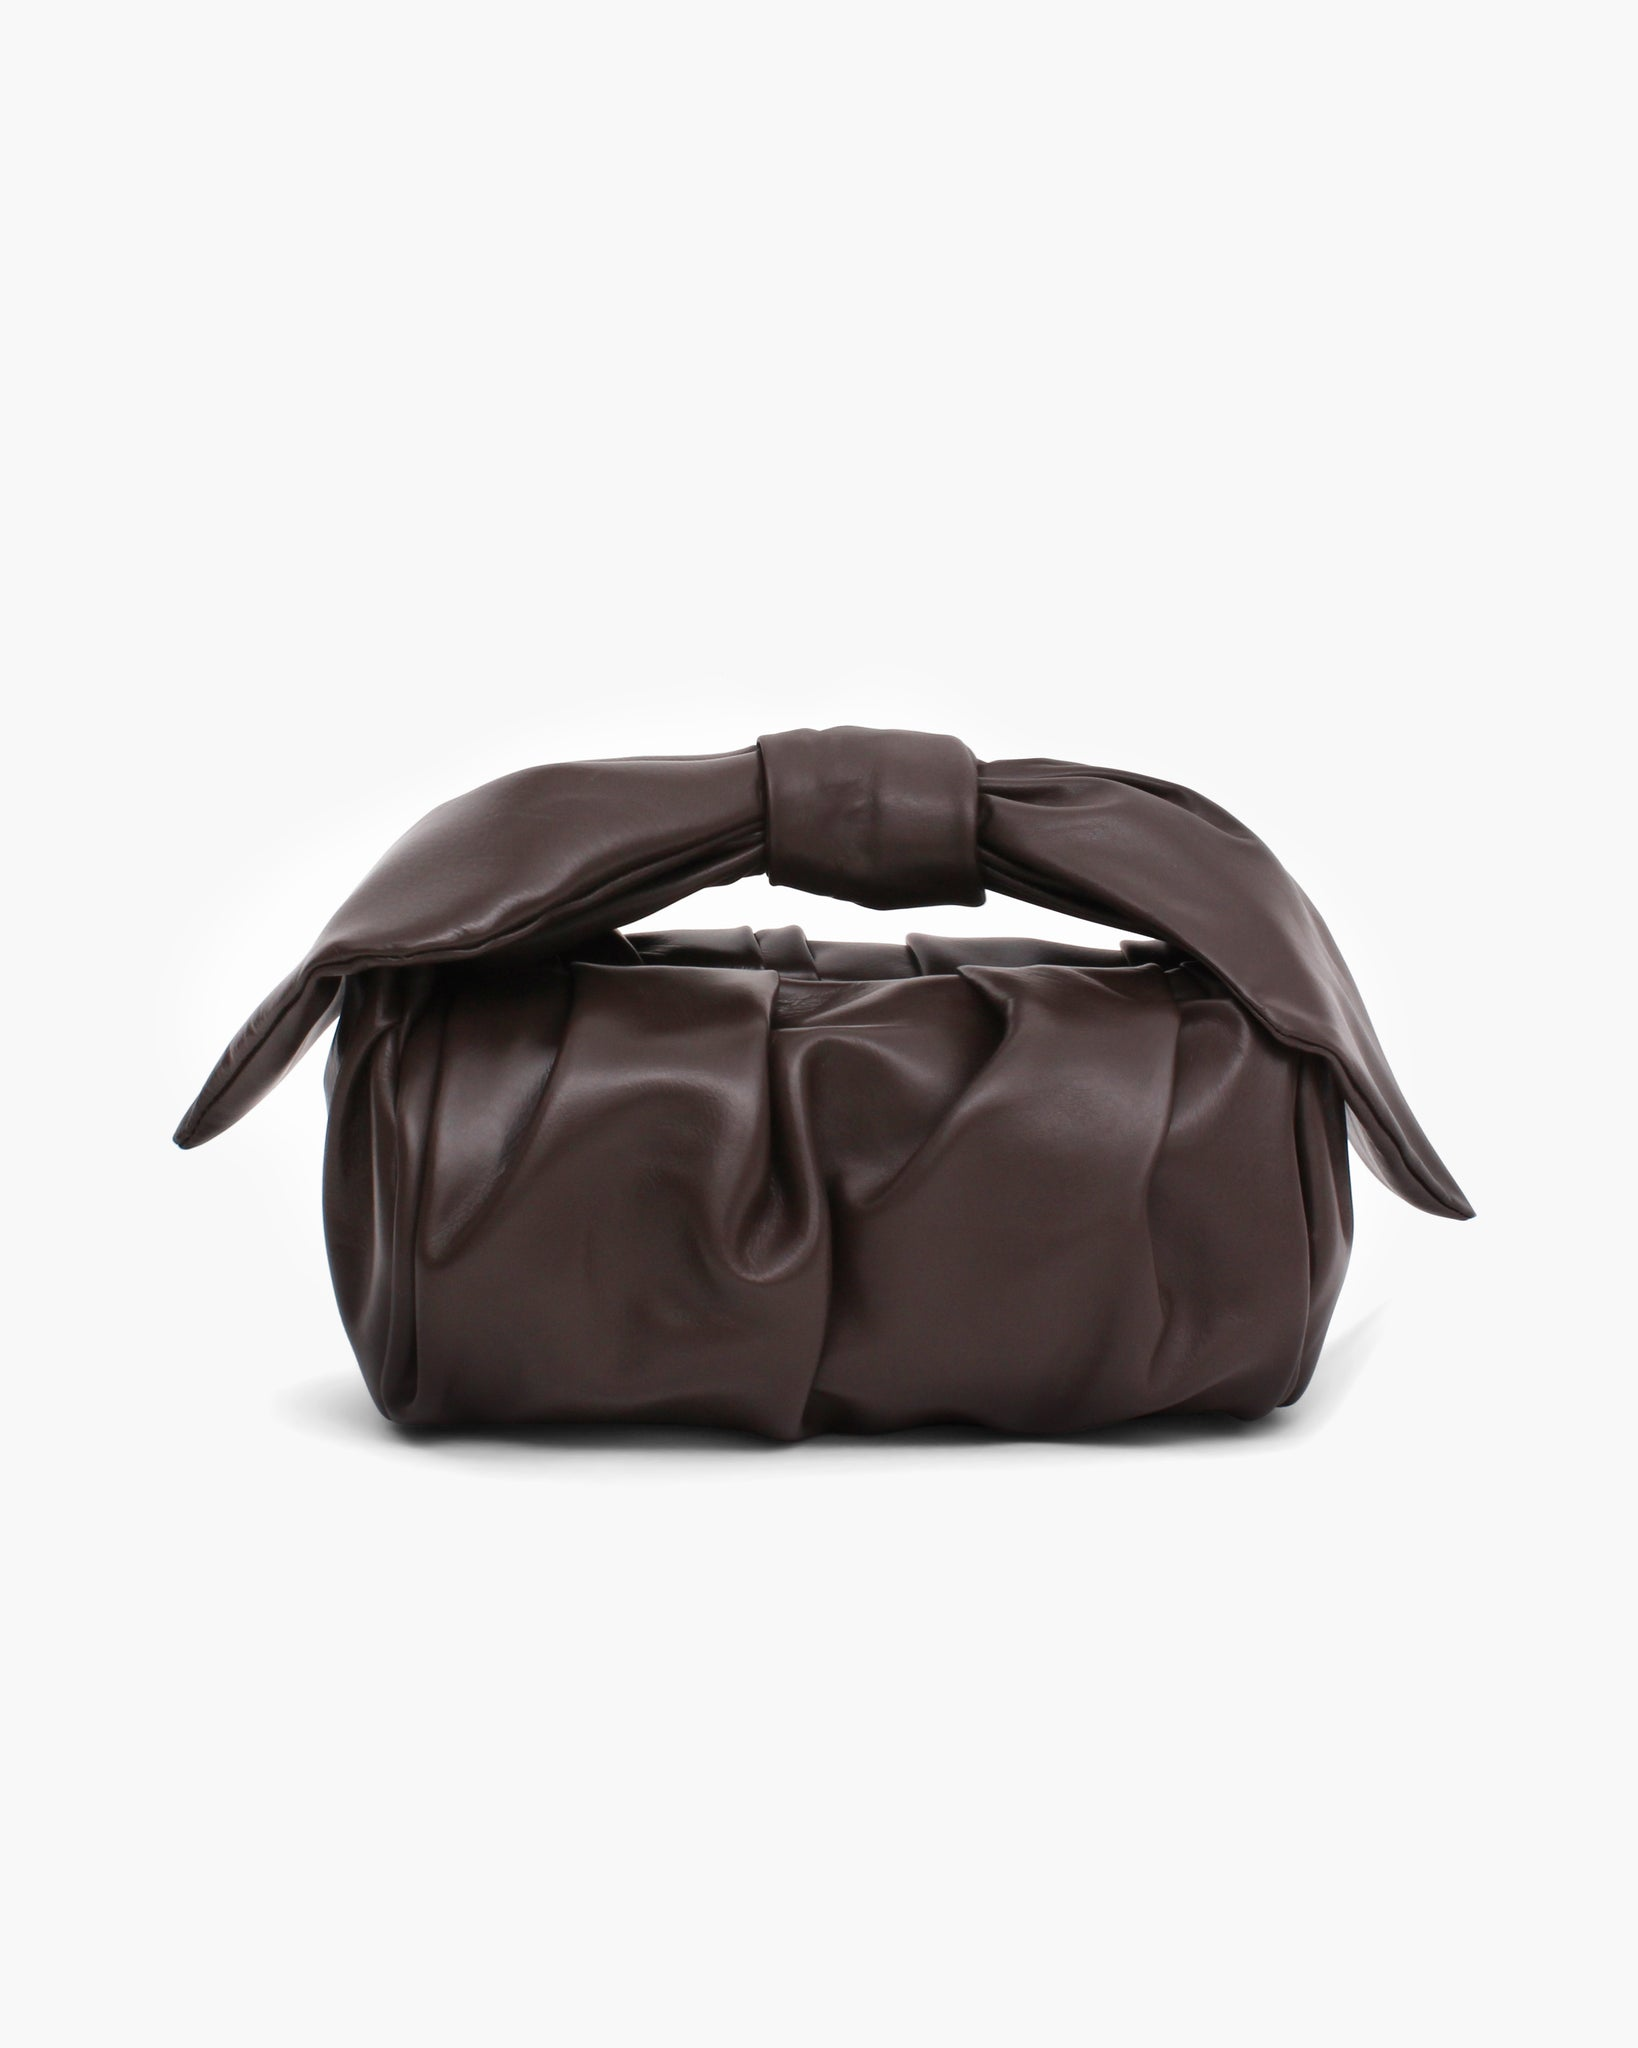 Nane Bag Leather Dark Brown - WEBSHOP EXCLUSIVE